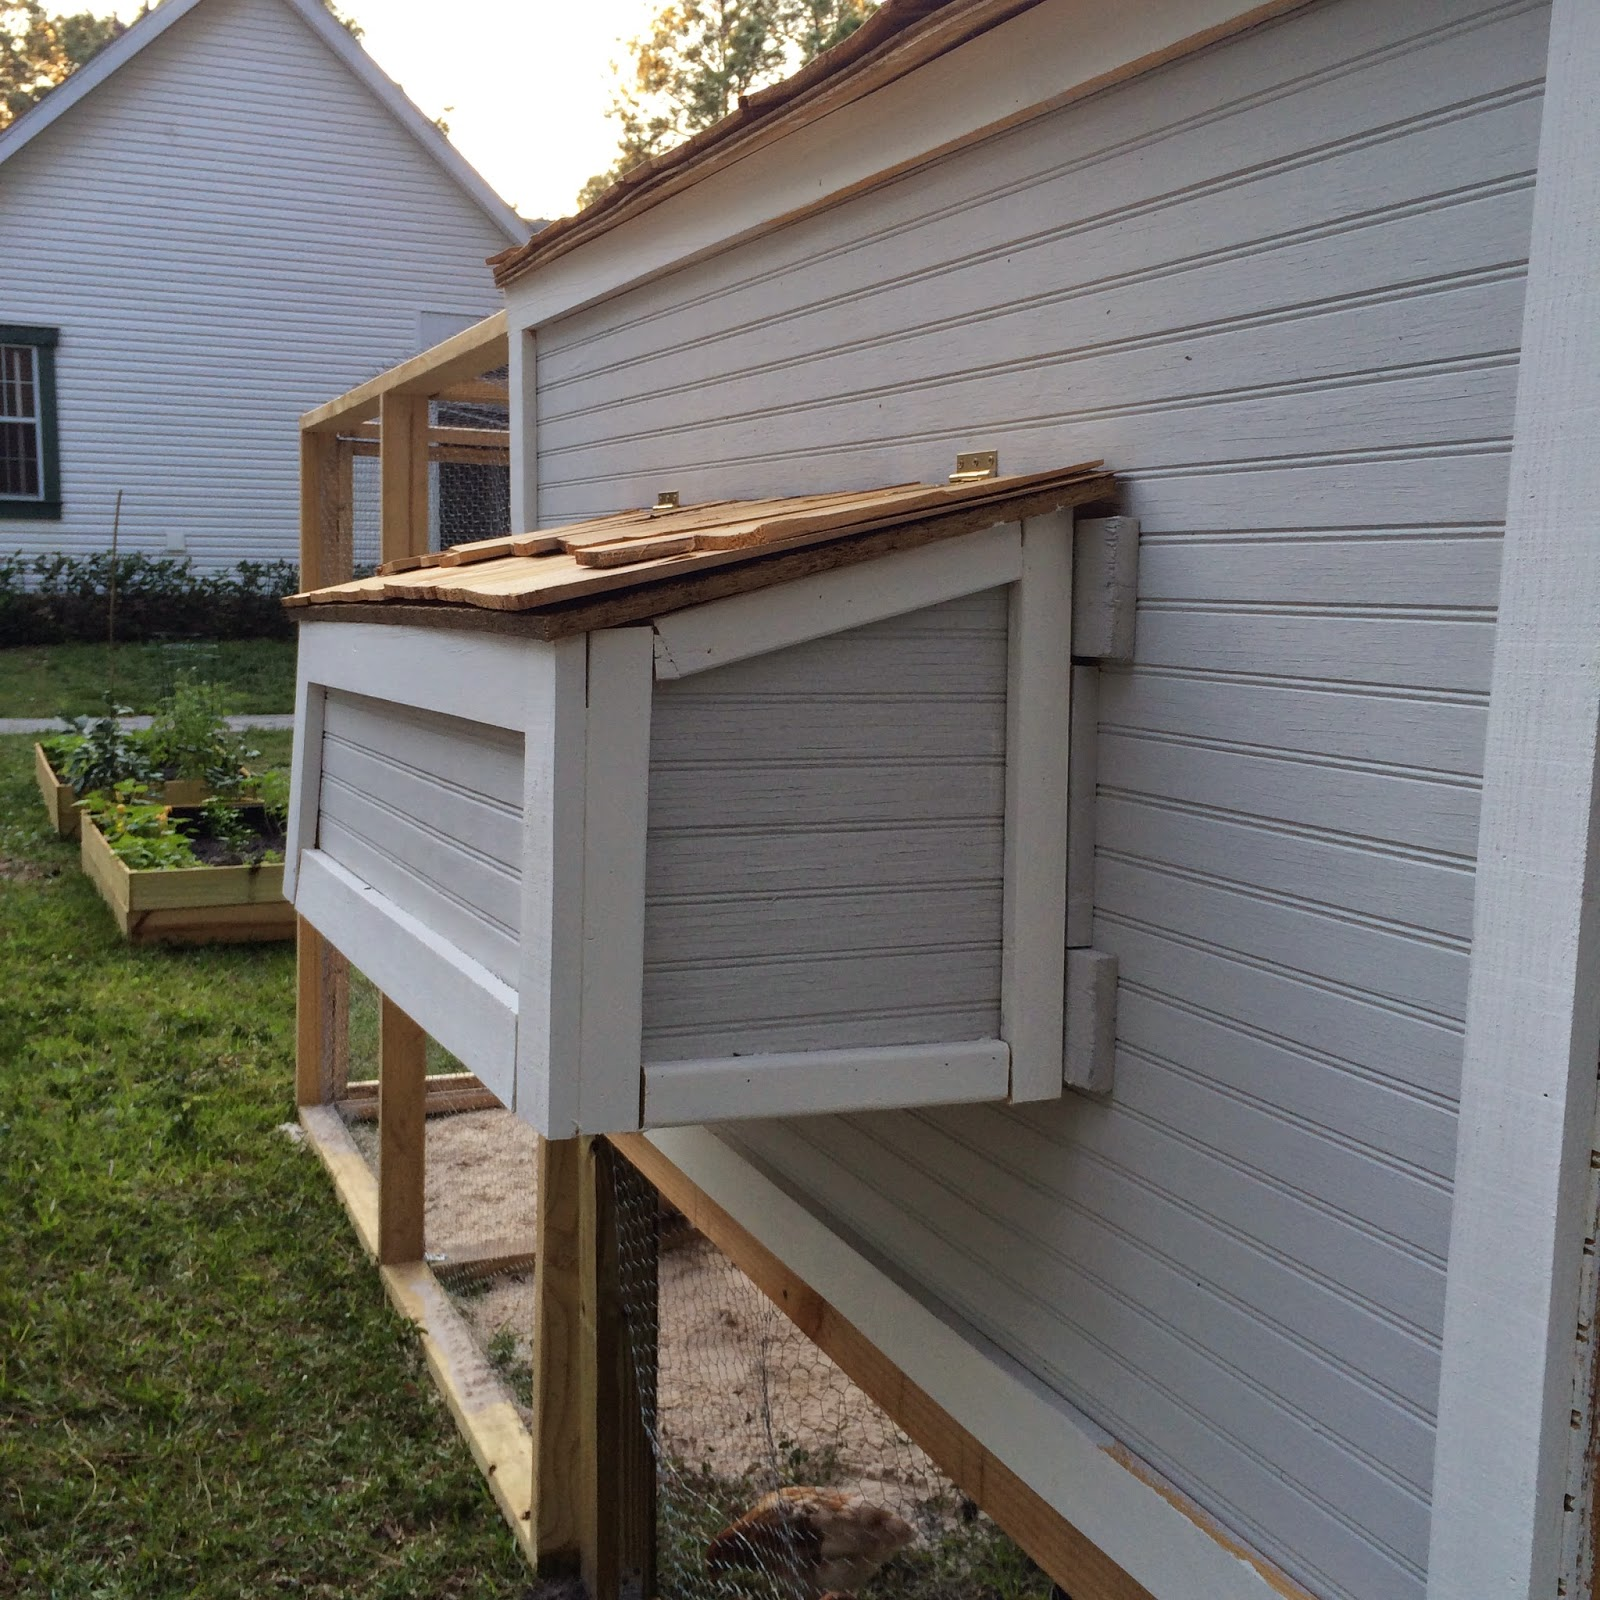 Bodem Kippenren Fabulously Vintage I Built A Chicken Coop And I Want To